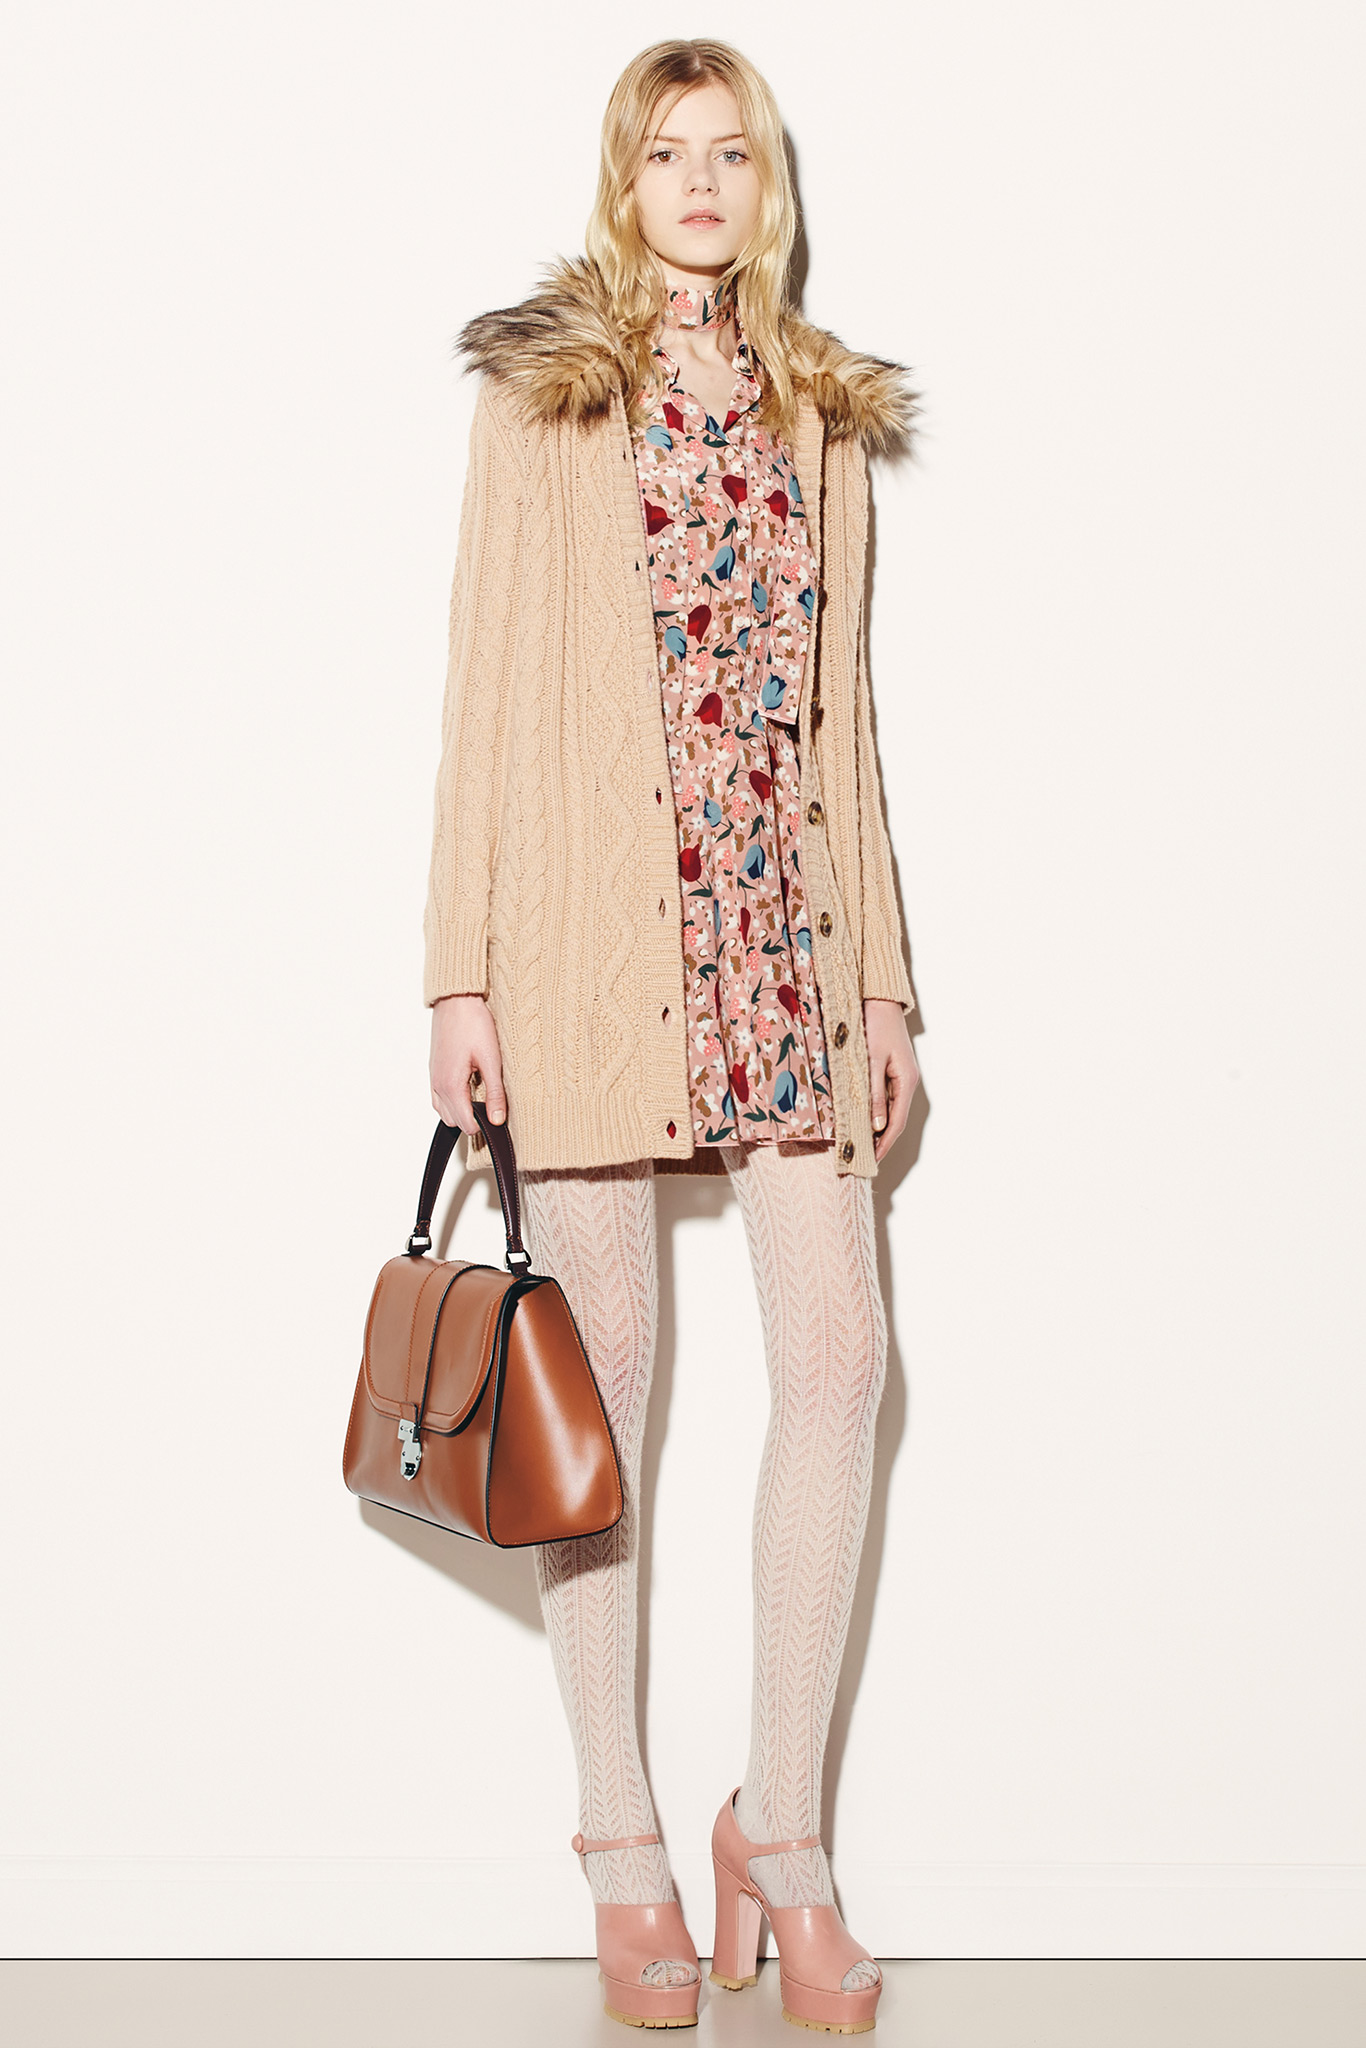 Red Valentino Fur Trimmed Cardigan Fall 2015